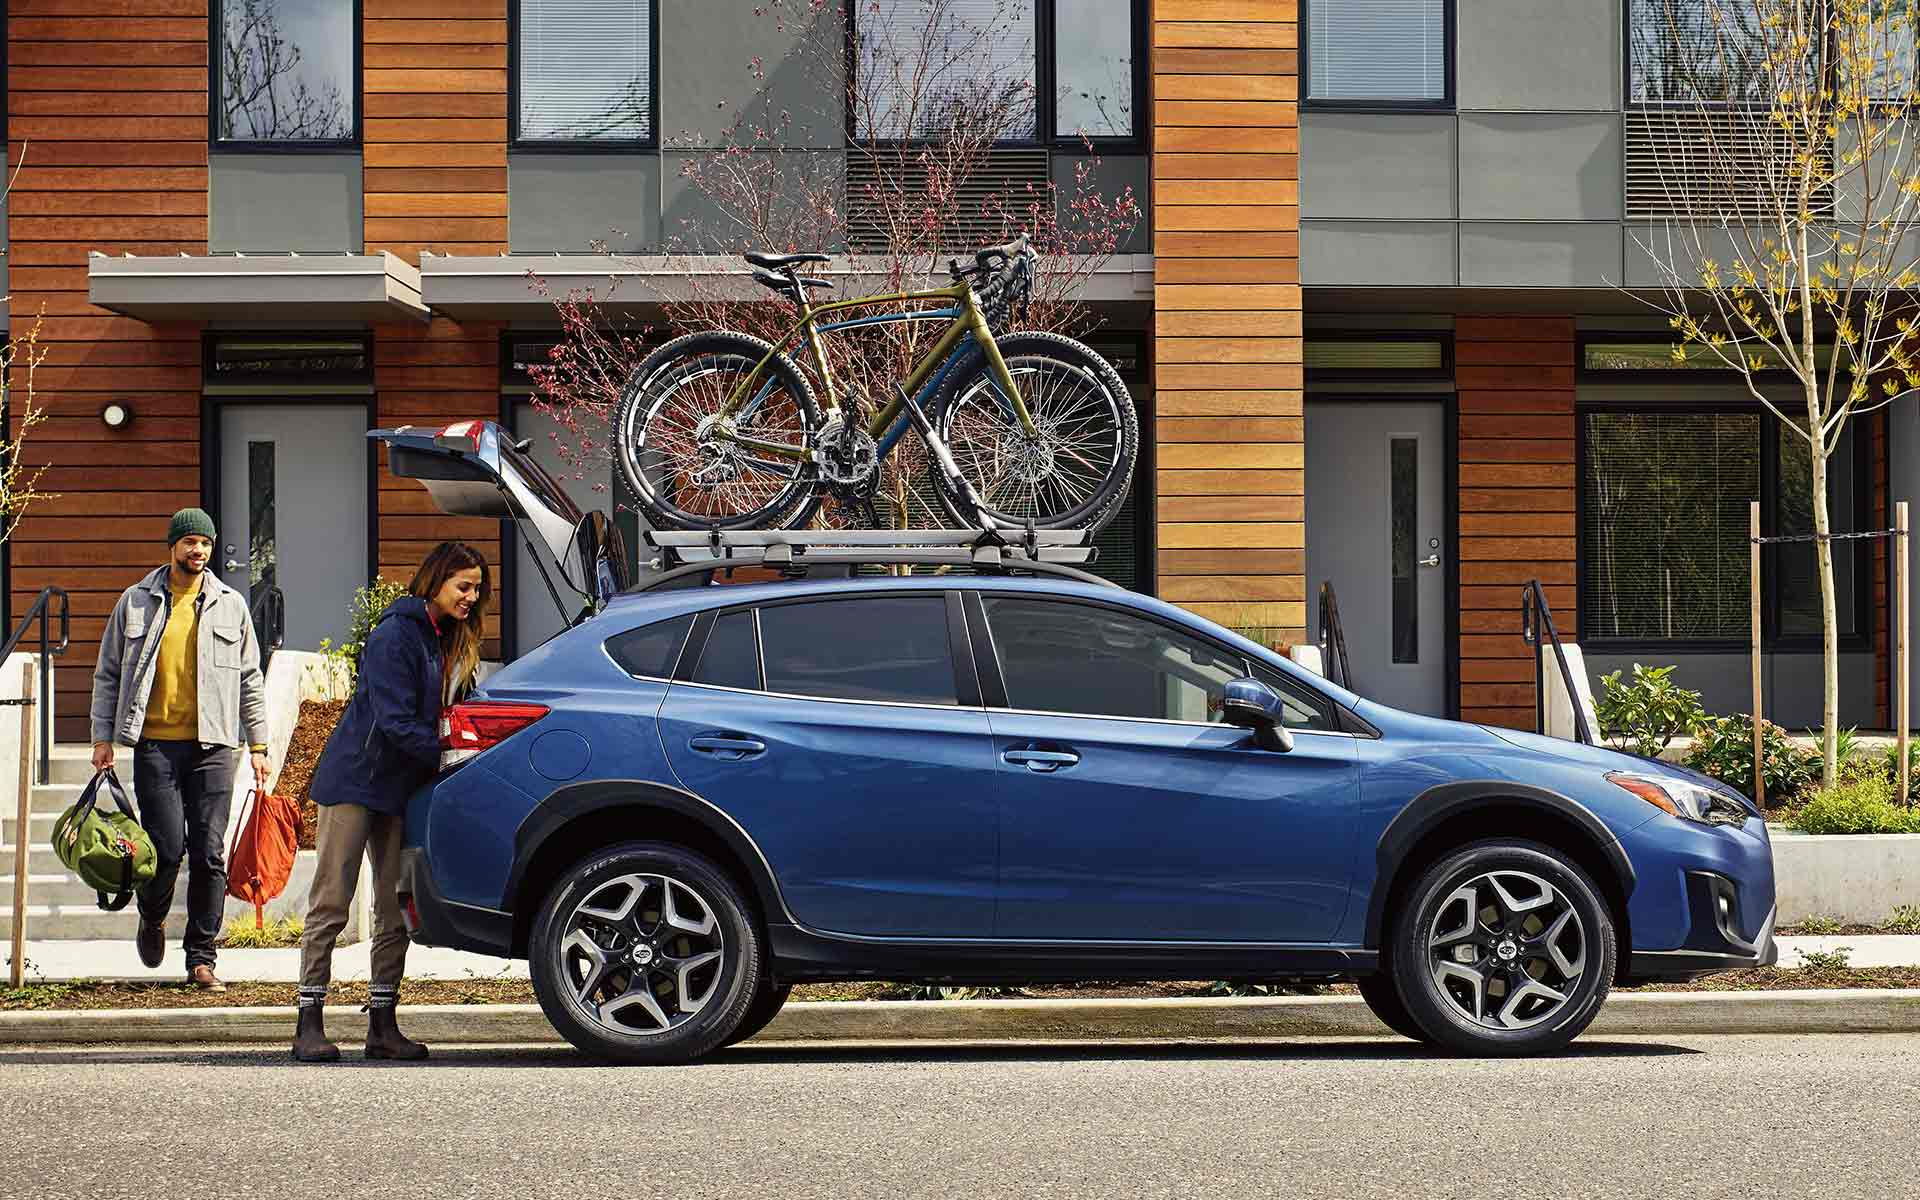 Capable 2019 Subaru Crosstrek For Sale in Bay City